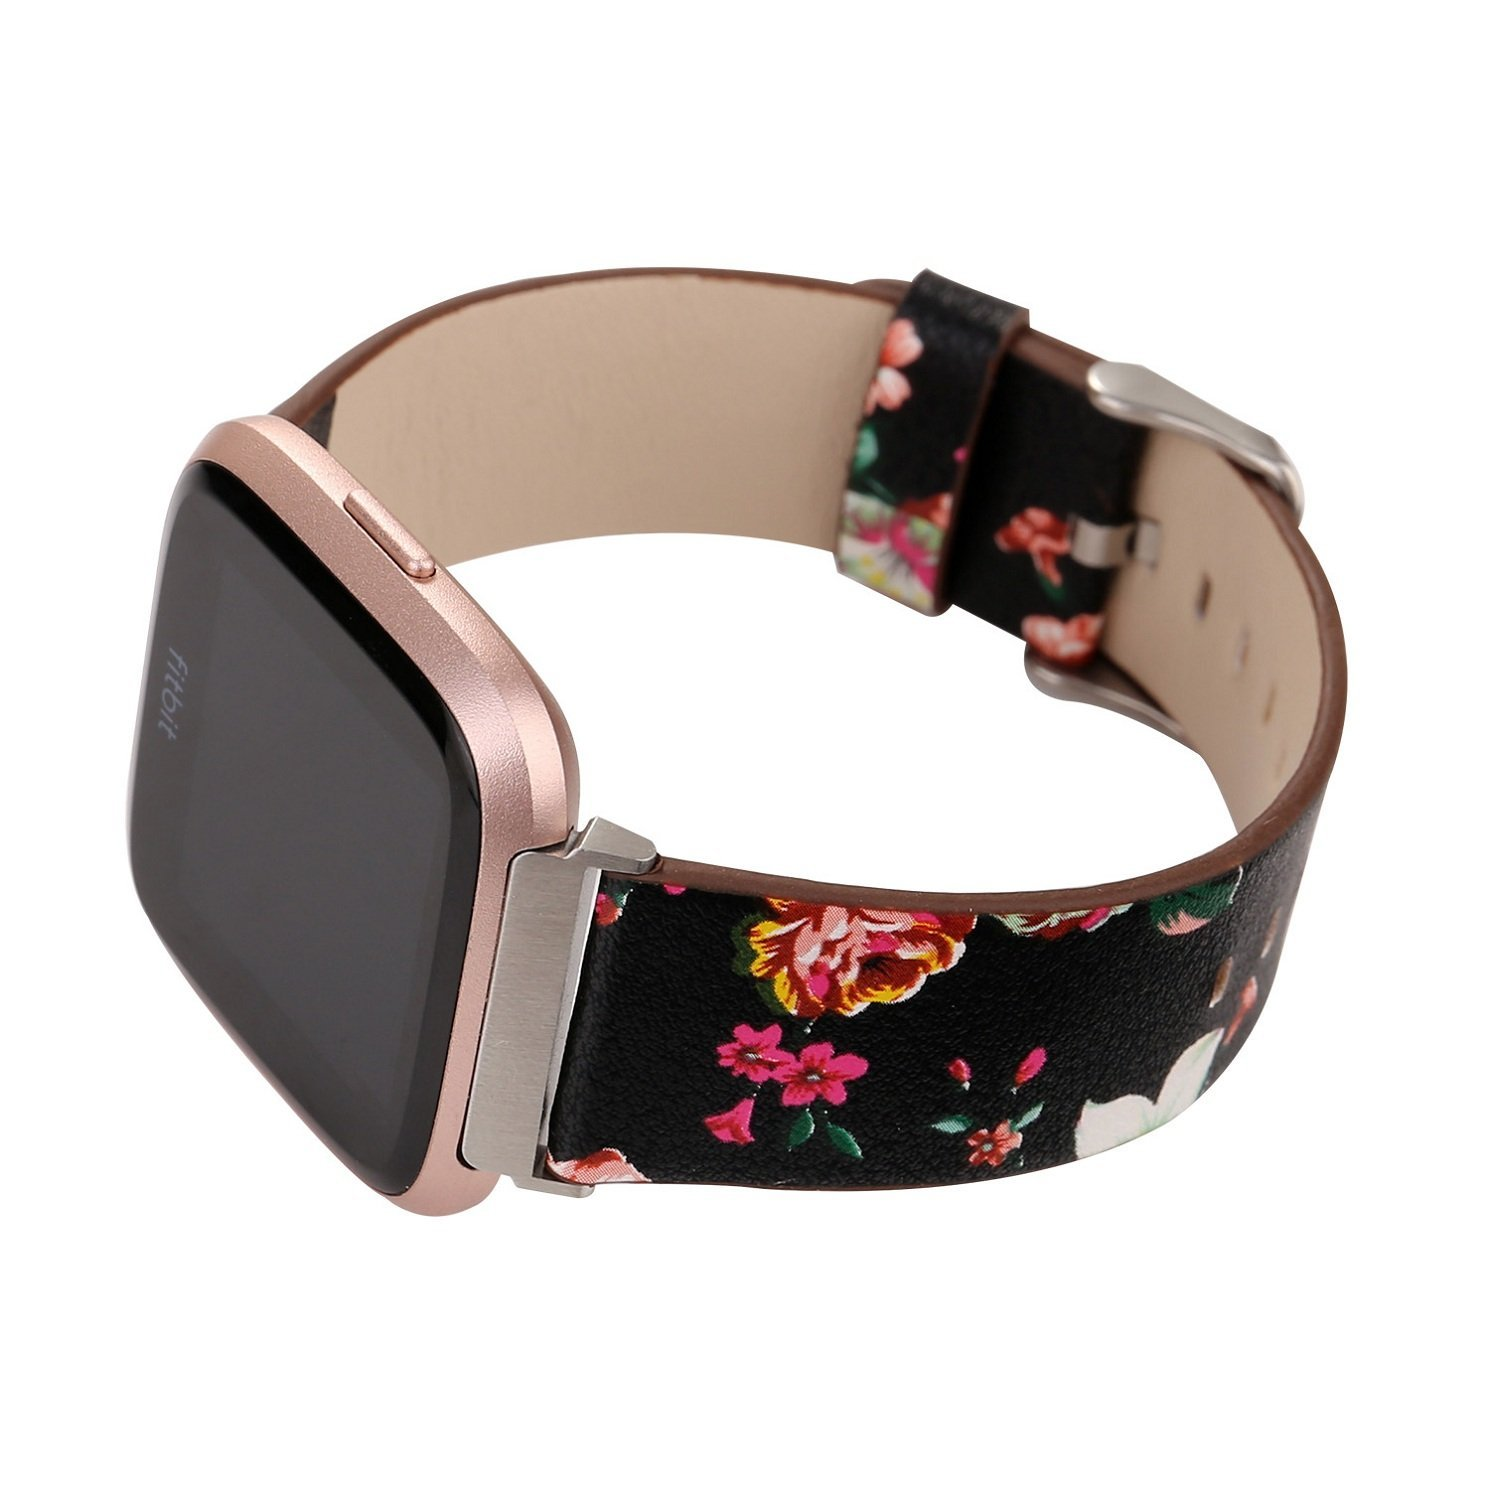 Juzzhou Smart Watch Band For Fitbit Versa Watchband Wriststrap Leather Motley Flower Bracelet Replacement Wrist Strap Wristband With Metal Adapter Adjustable Buckle Clasp For Woman Lady Girl Black by Juzzhou (Image #4)